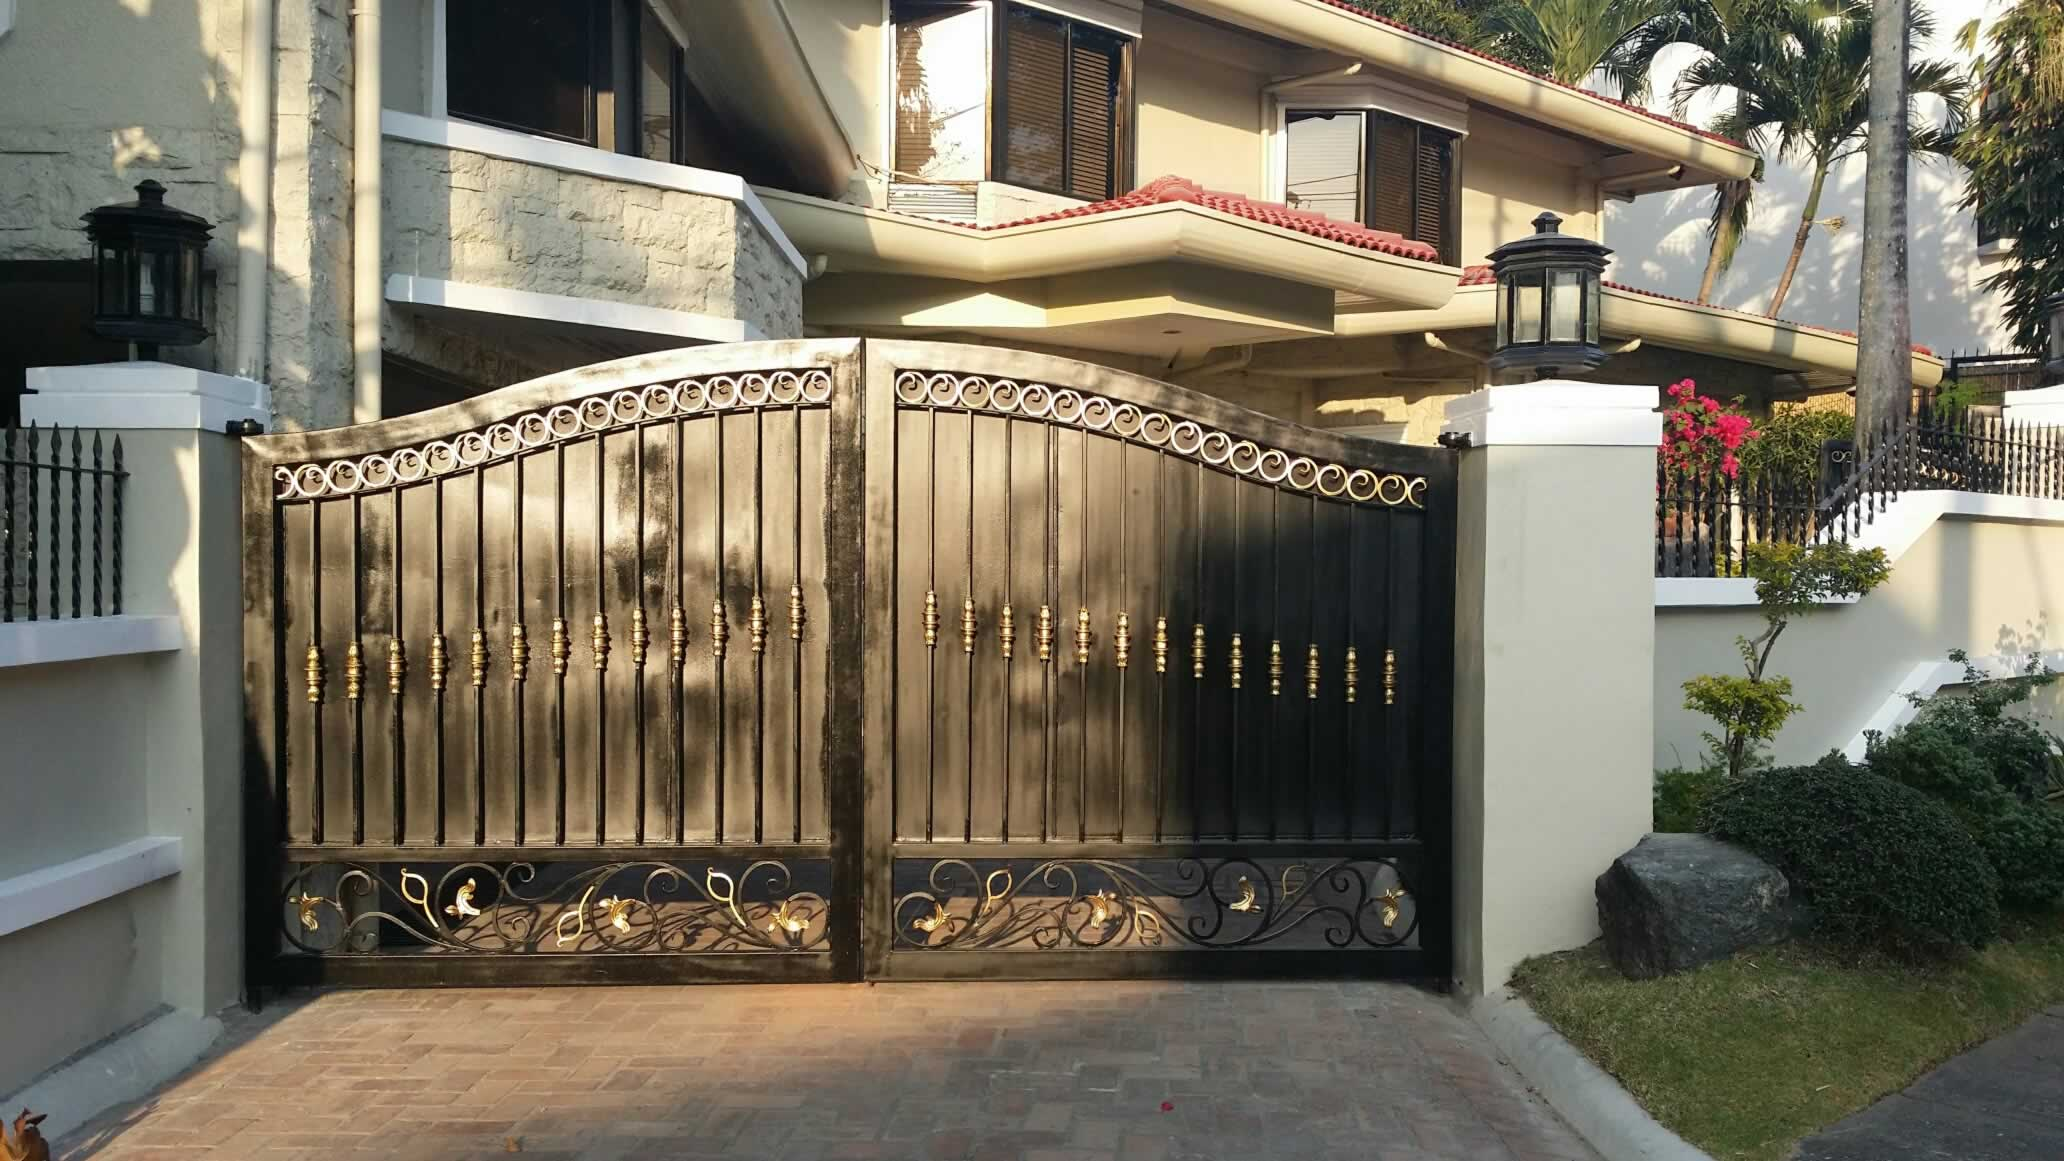 Wought Iron Entrance Gate, Pedestrian Gate.